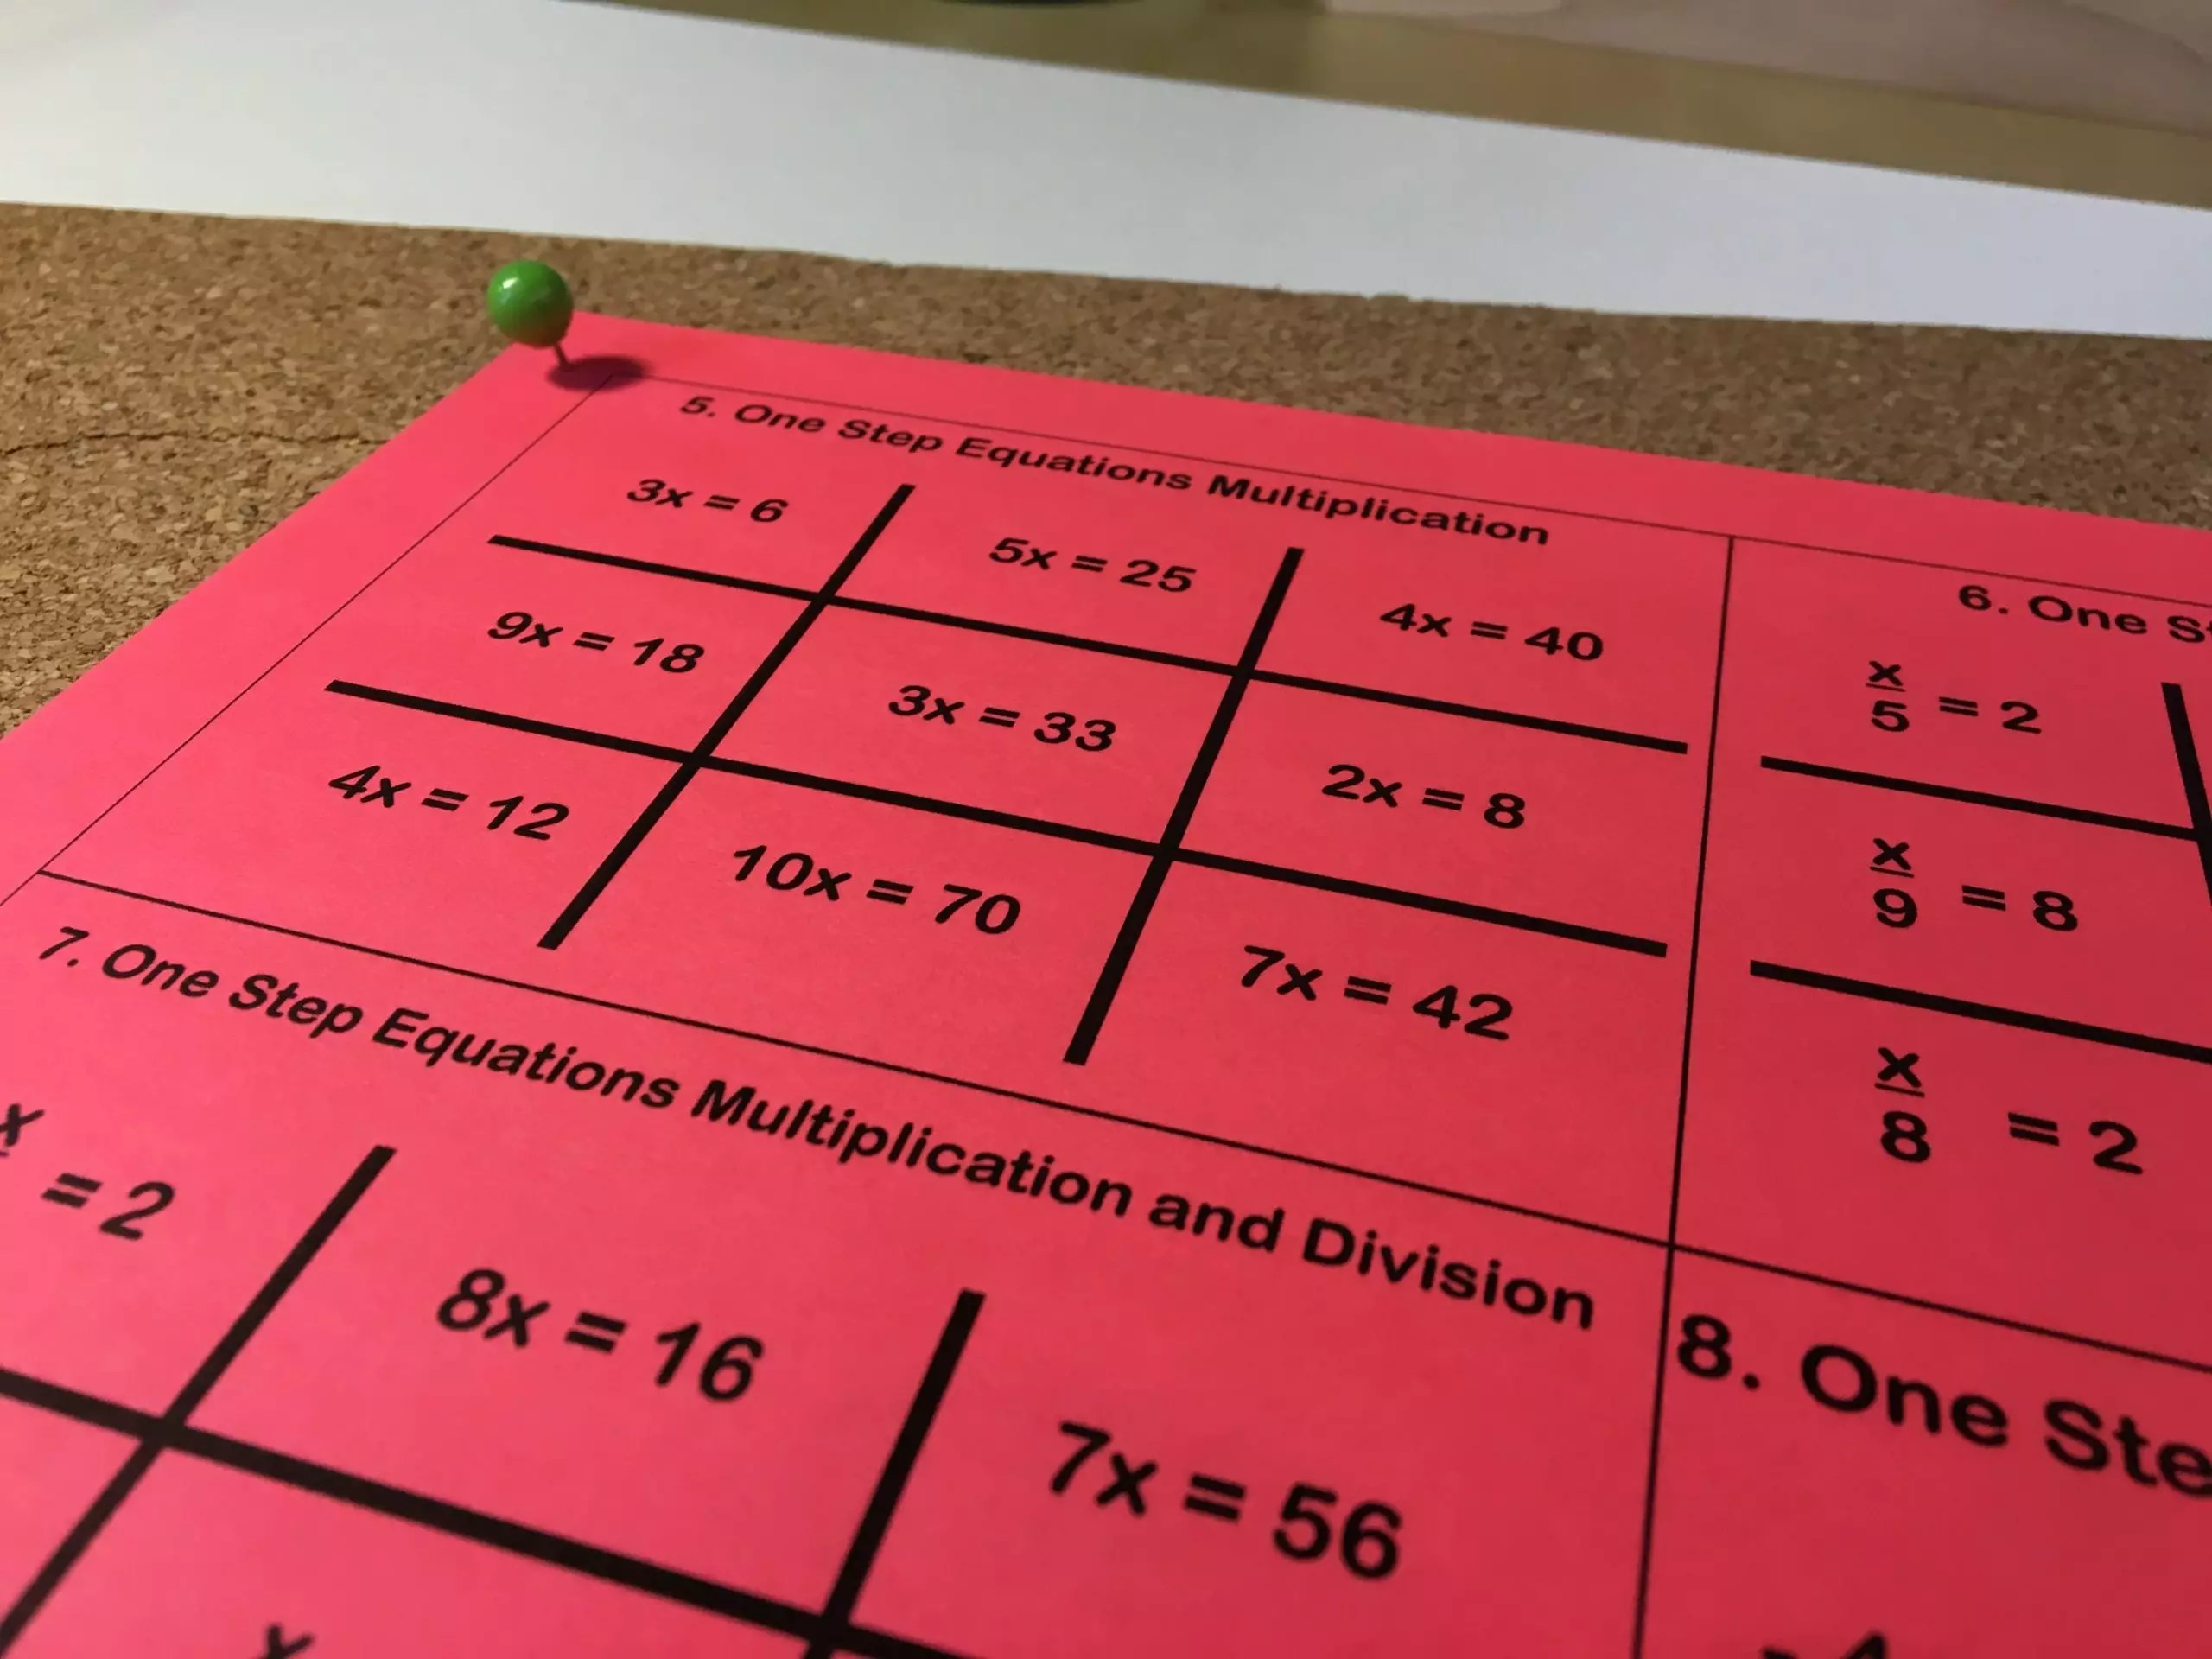 hight resolution of 12 One Step Equation Activities That Are Out of this World - Idea Galaxy